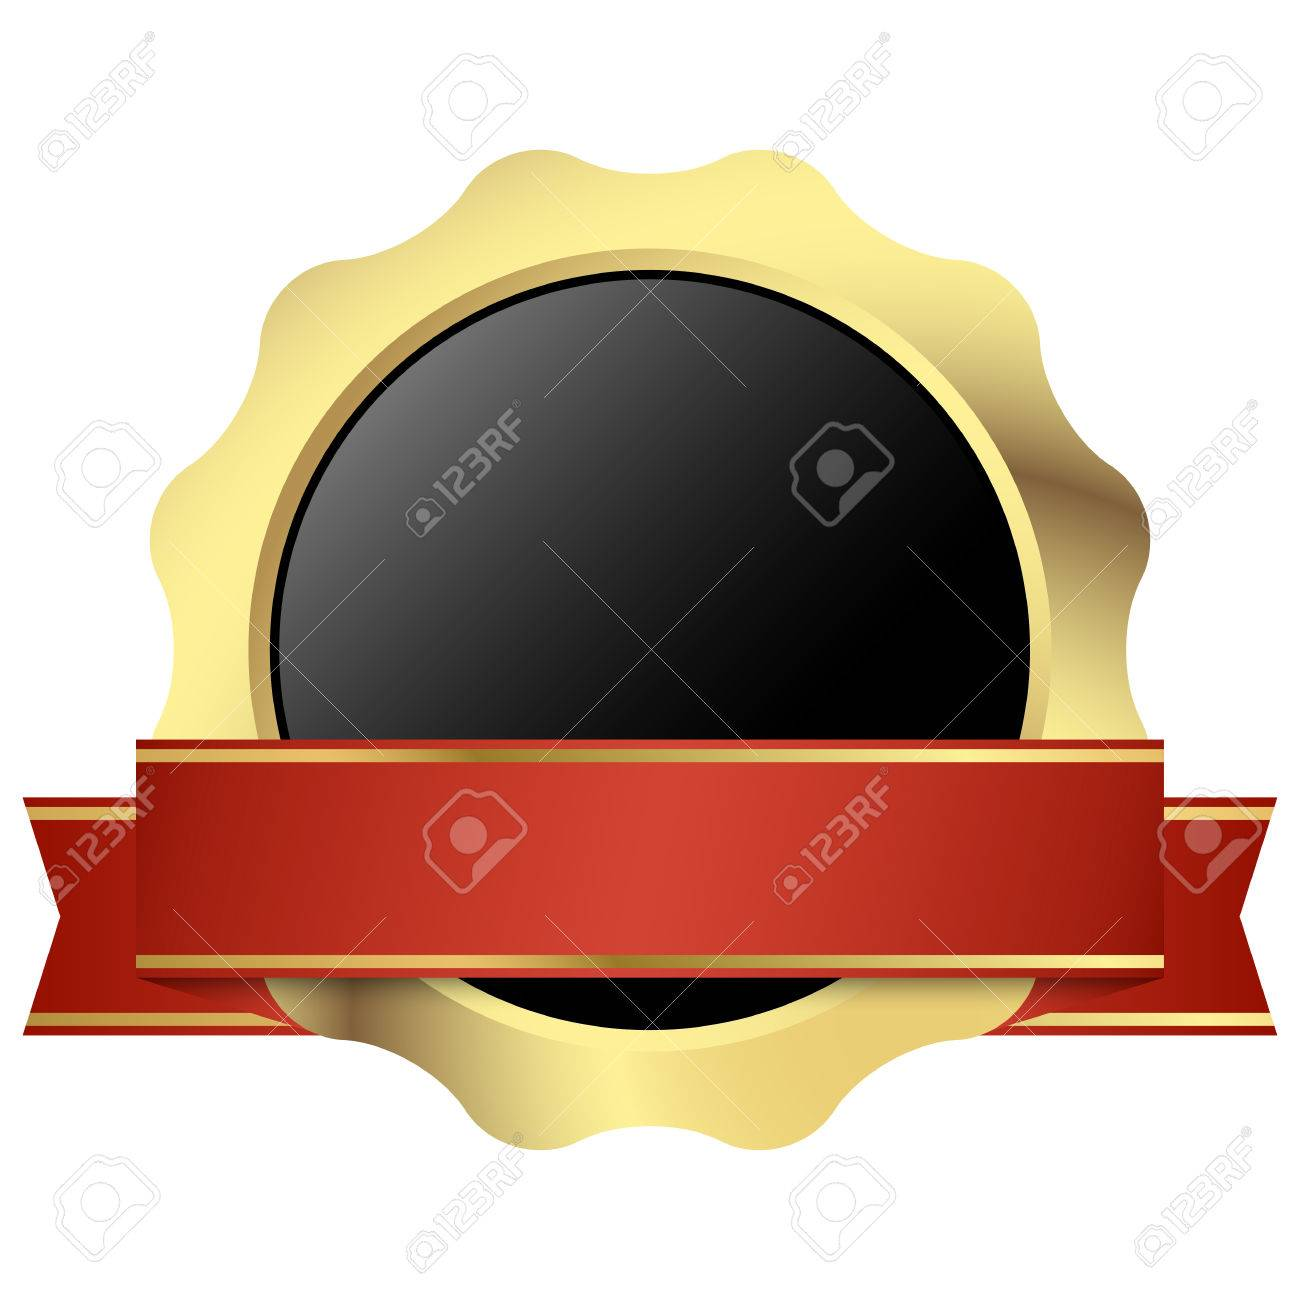 Gold Seal Of Quality Template With Red Banner Royalty Free ...